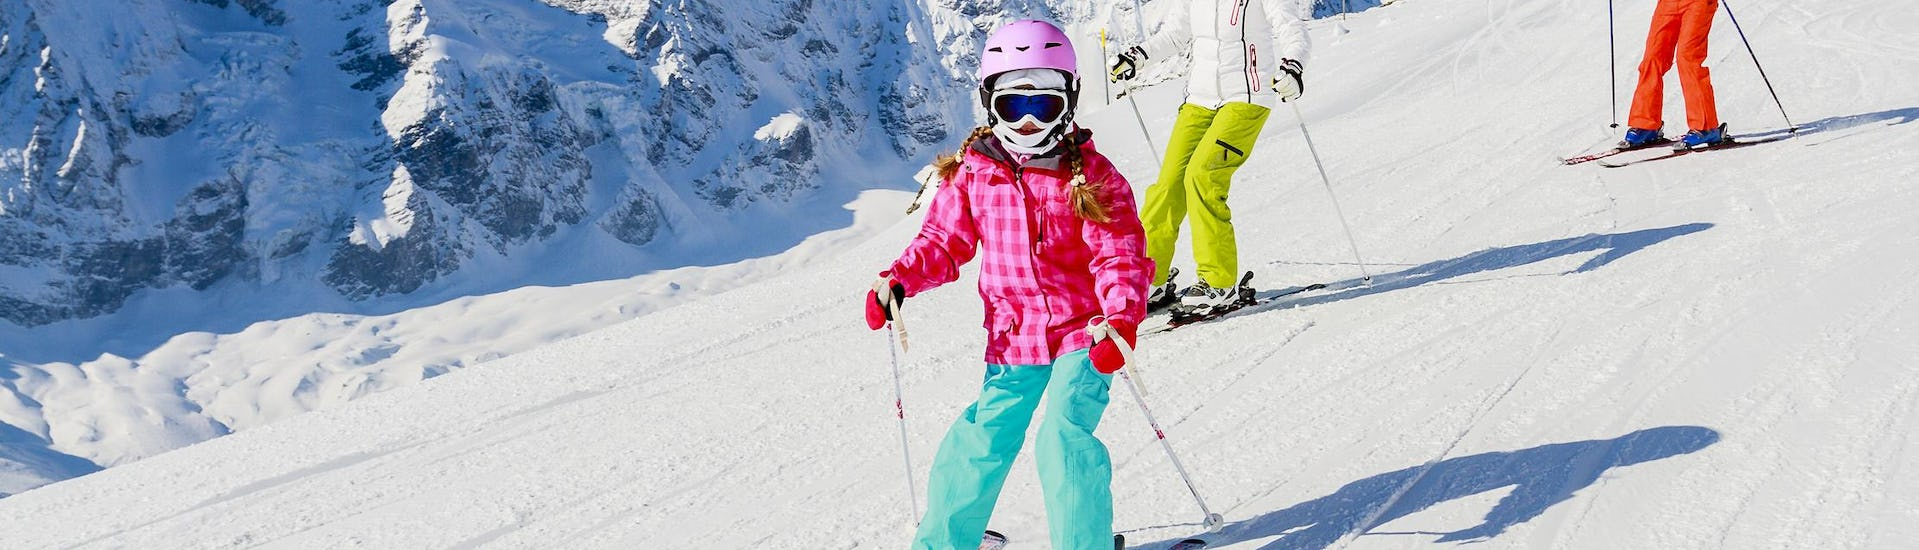 skiing kids with mountains at the background